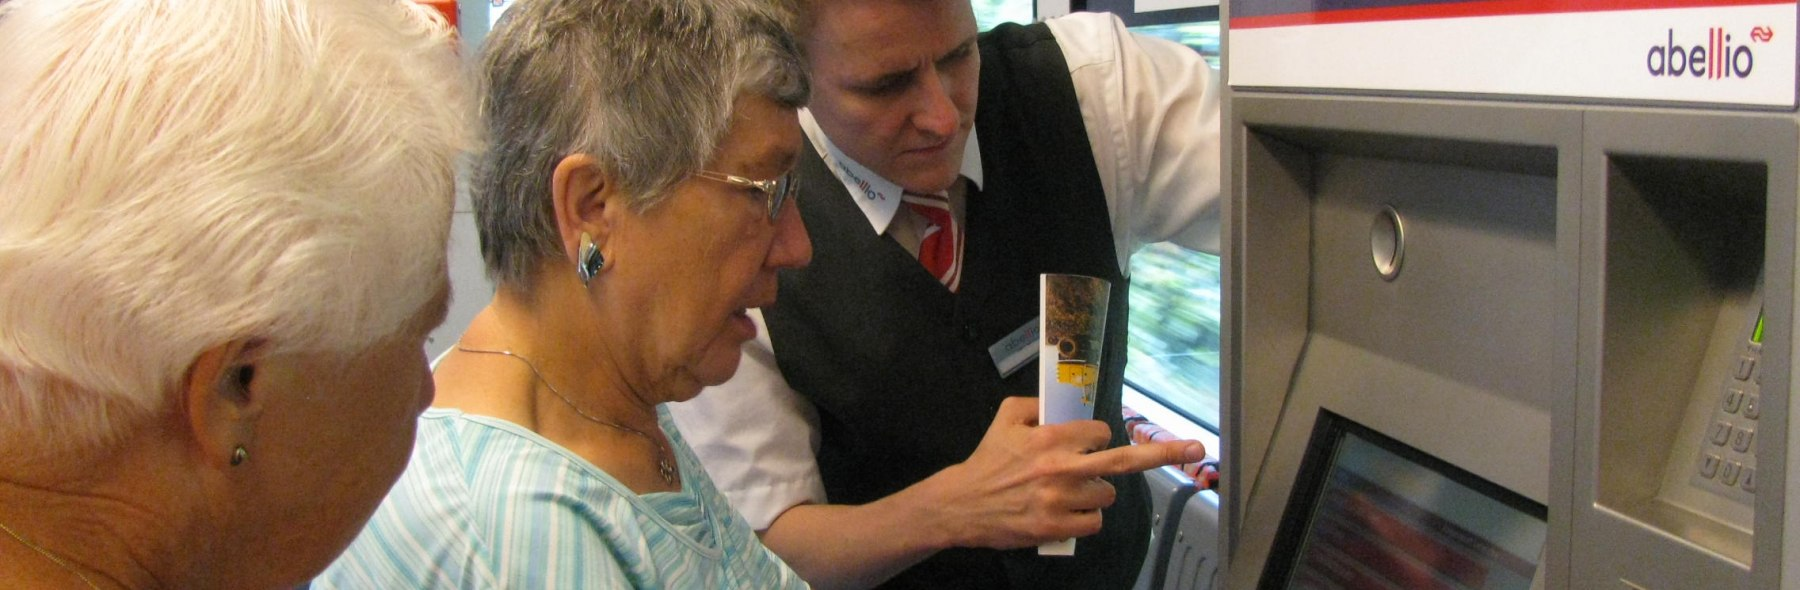 Abellio Germany employee helping elderly women with purchasing tickets